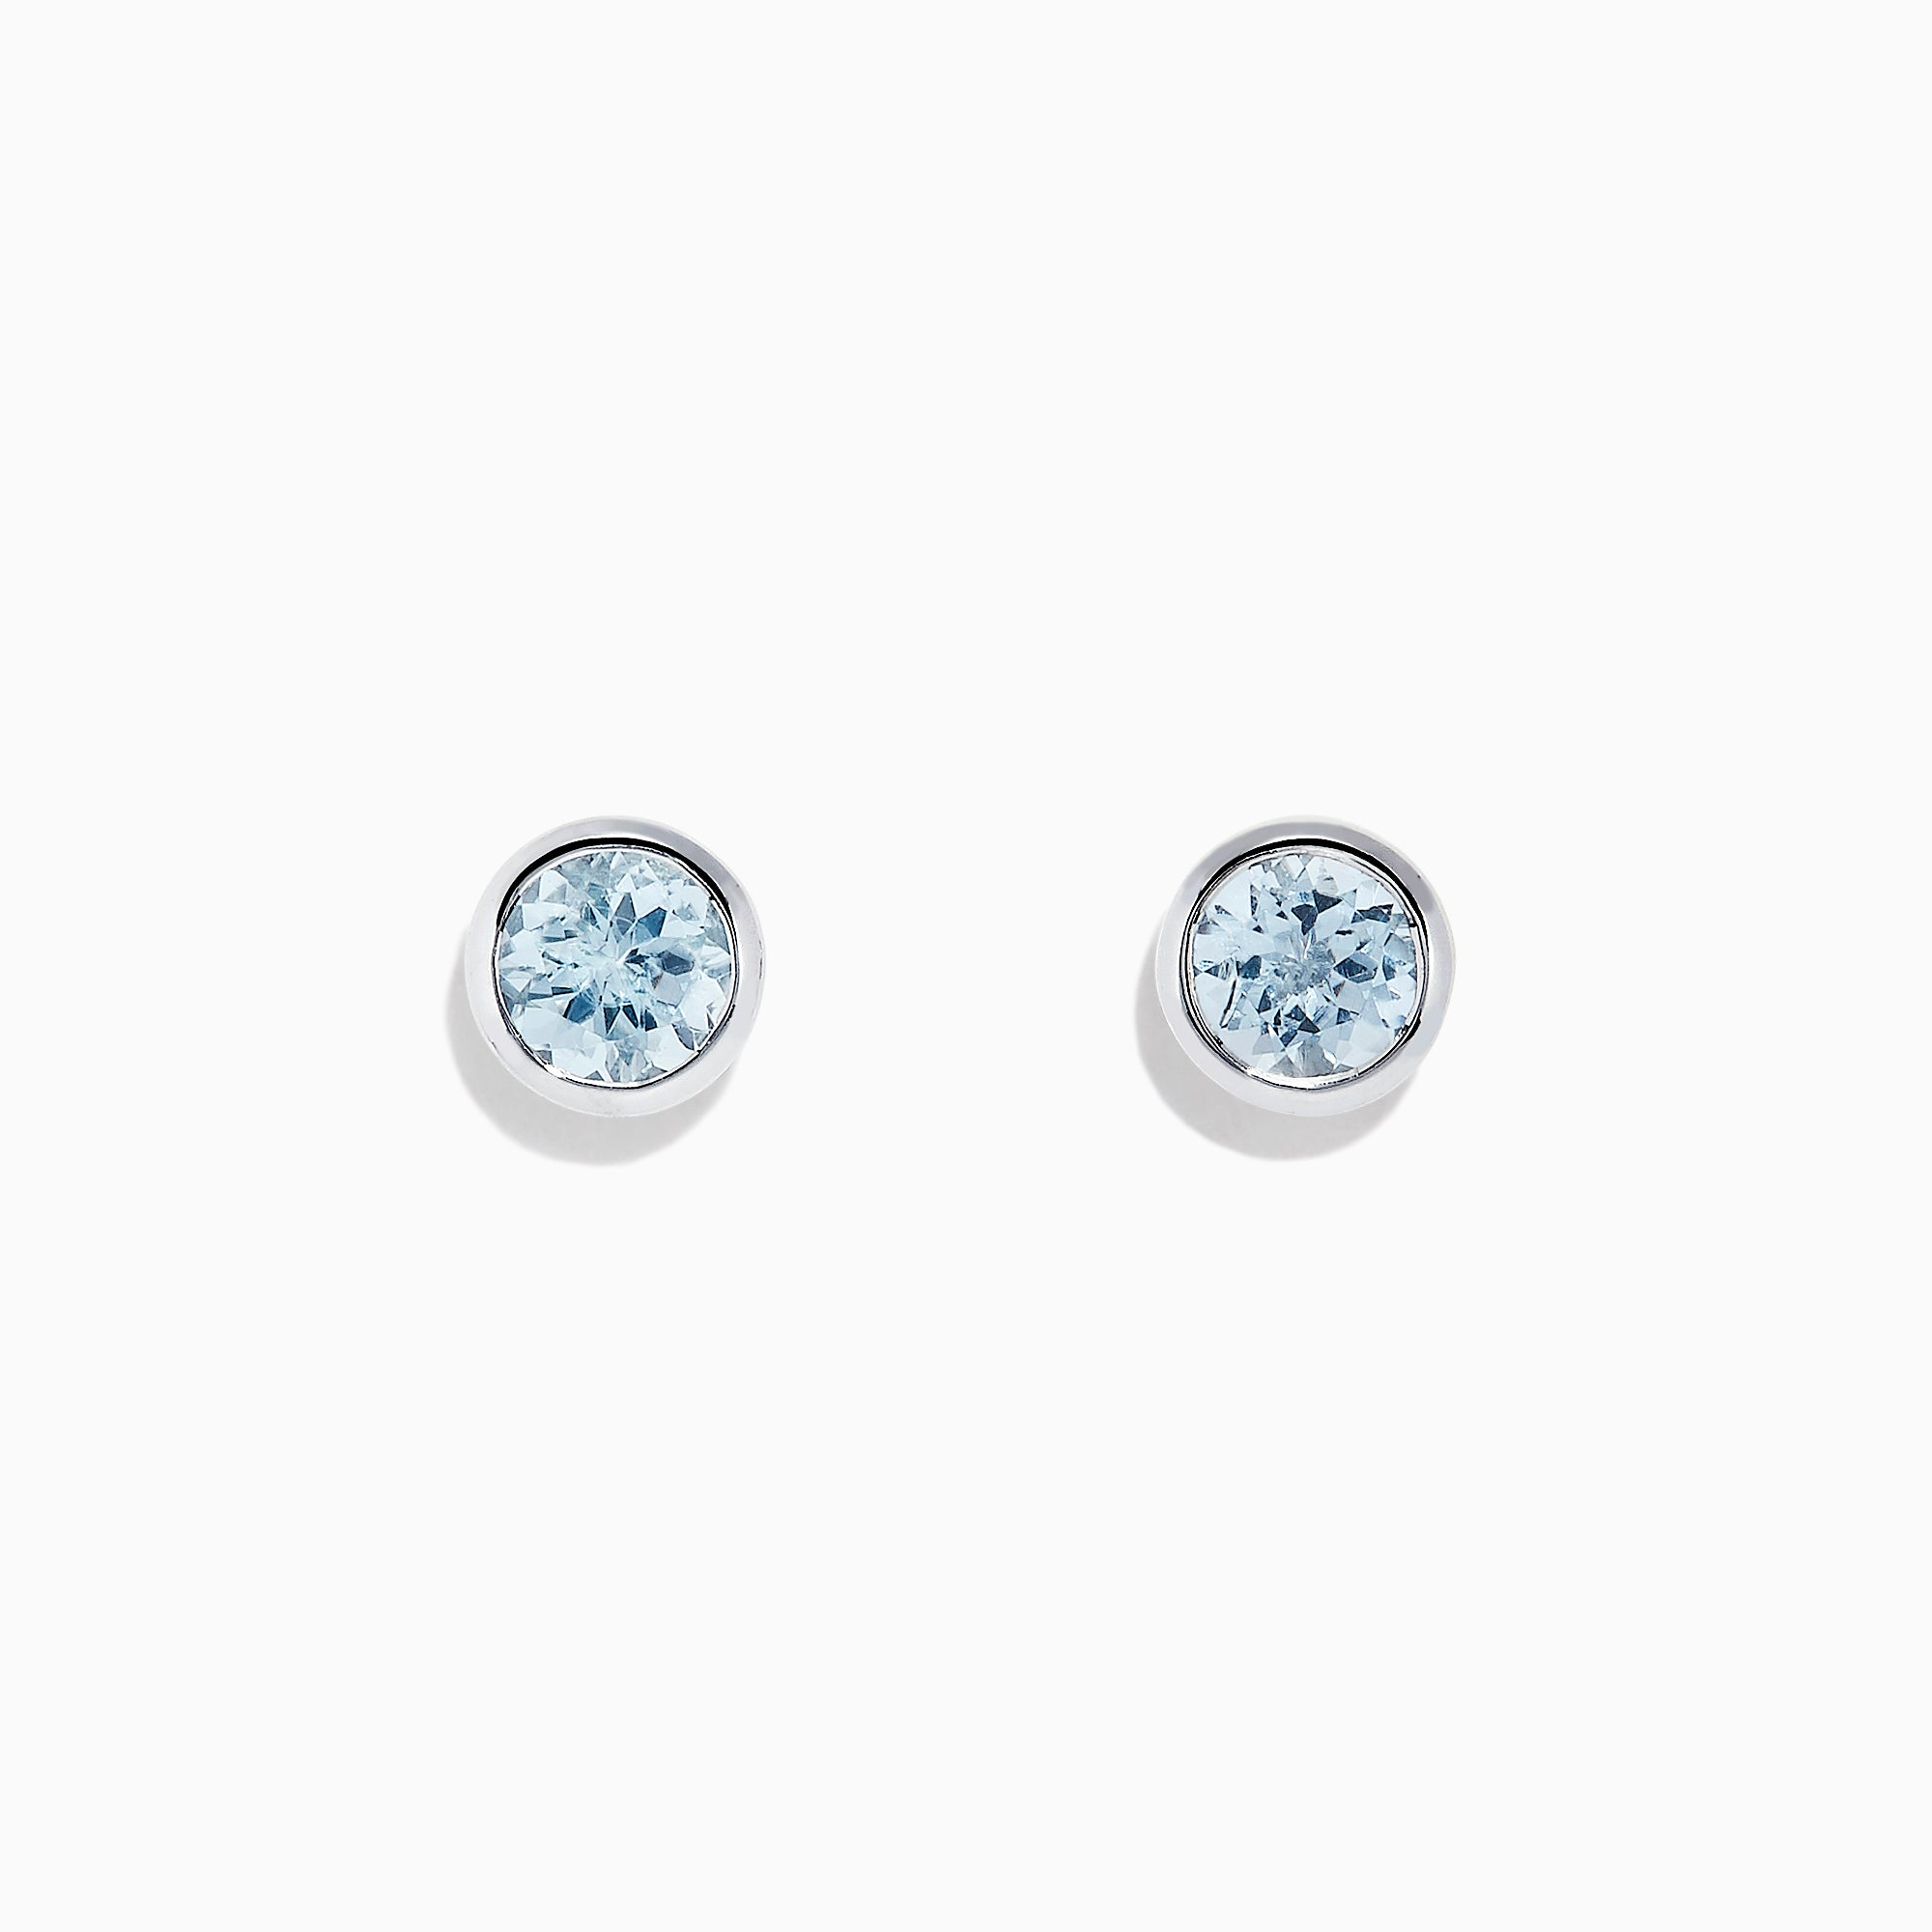 Effy Aquarius 14K White Gold Aquamarine Stud Earrings, 0.90 TCW